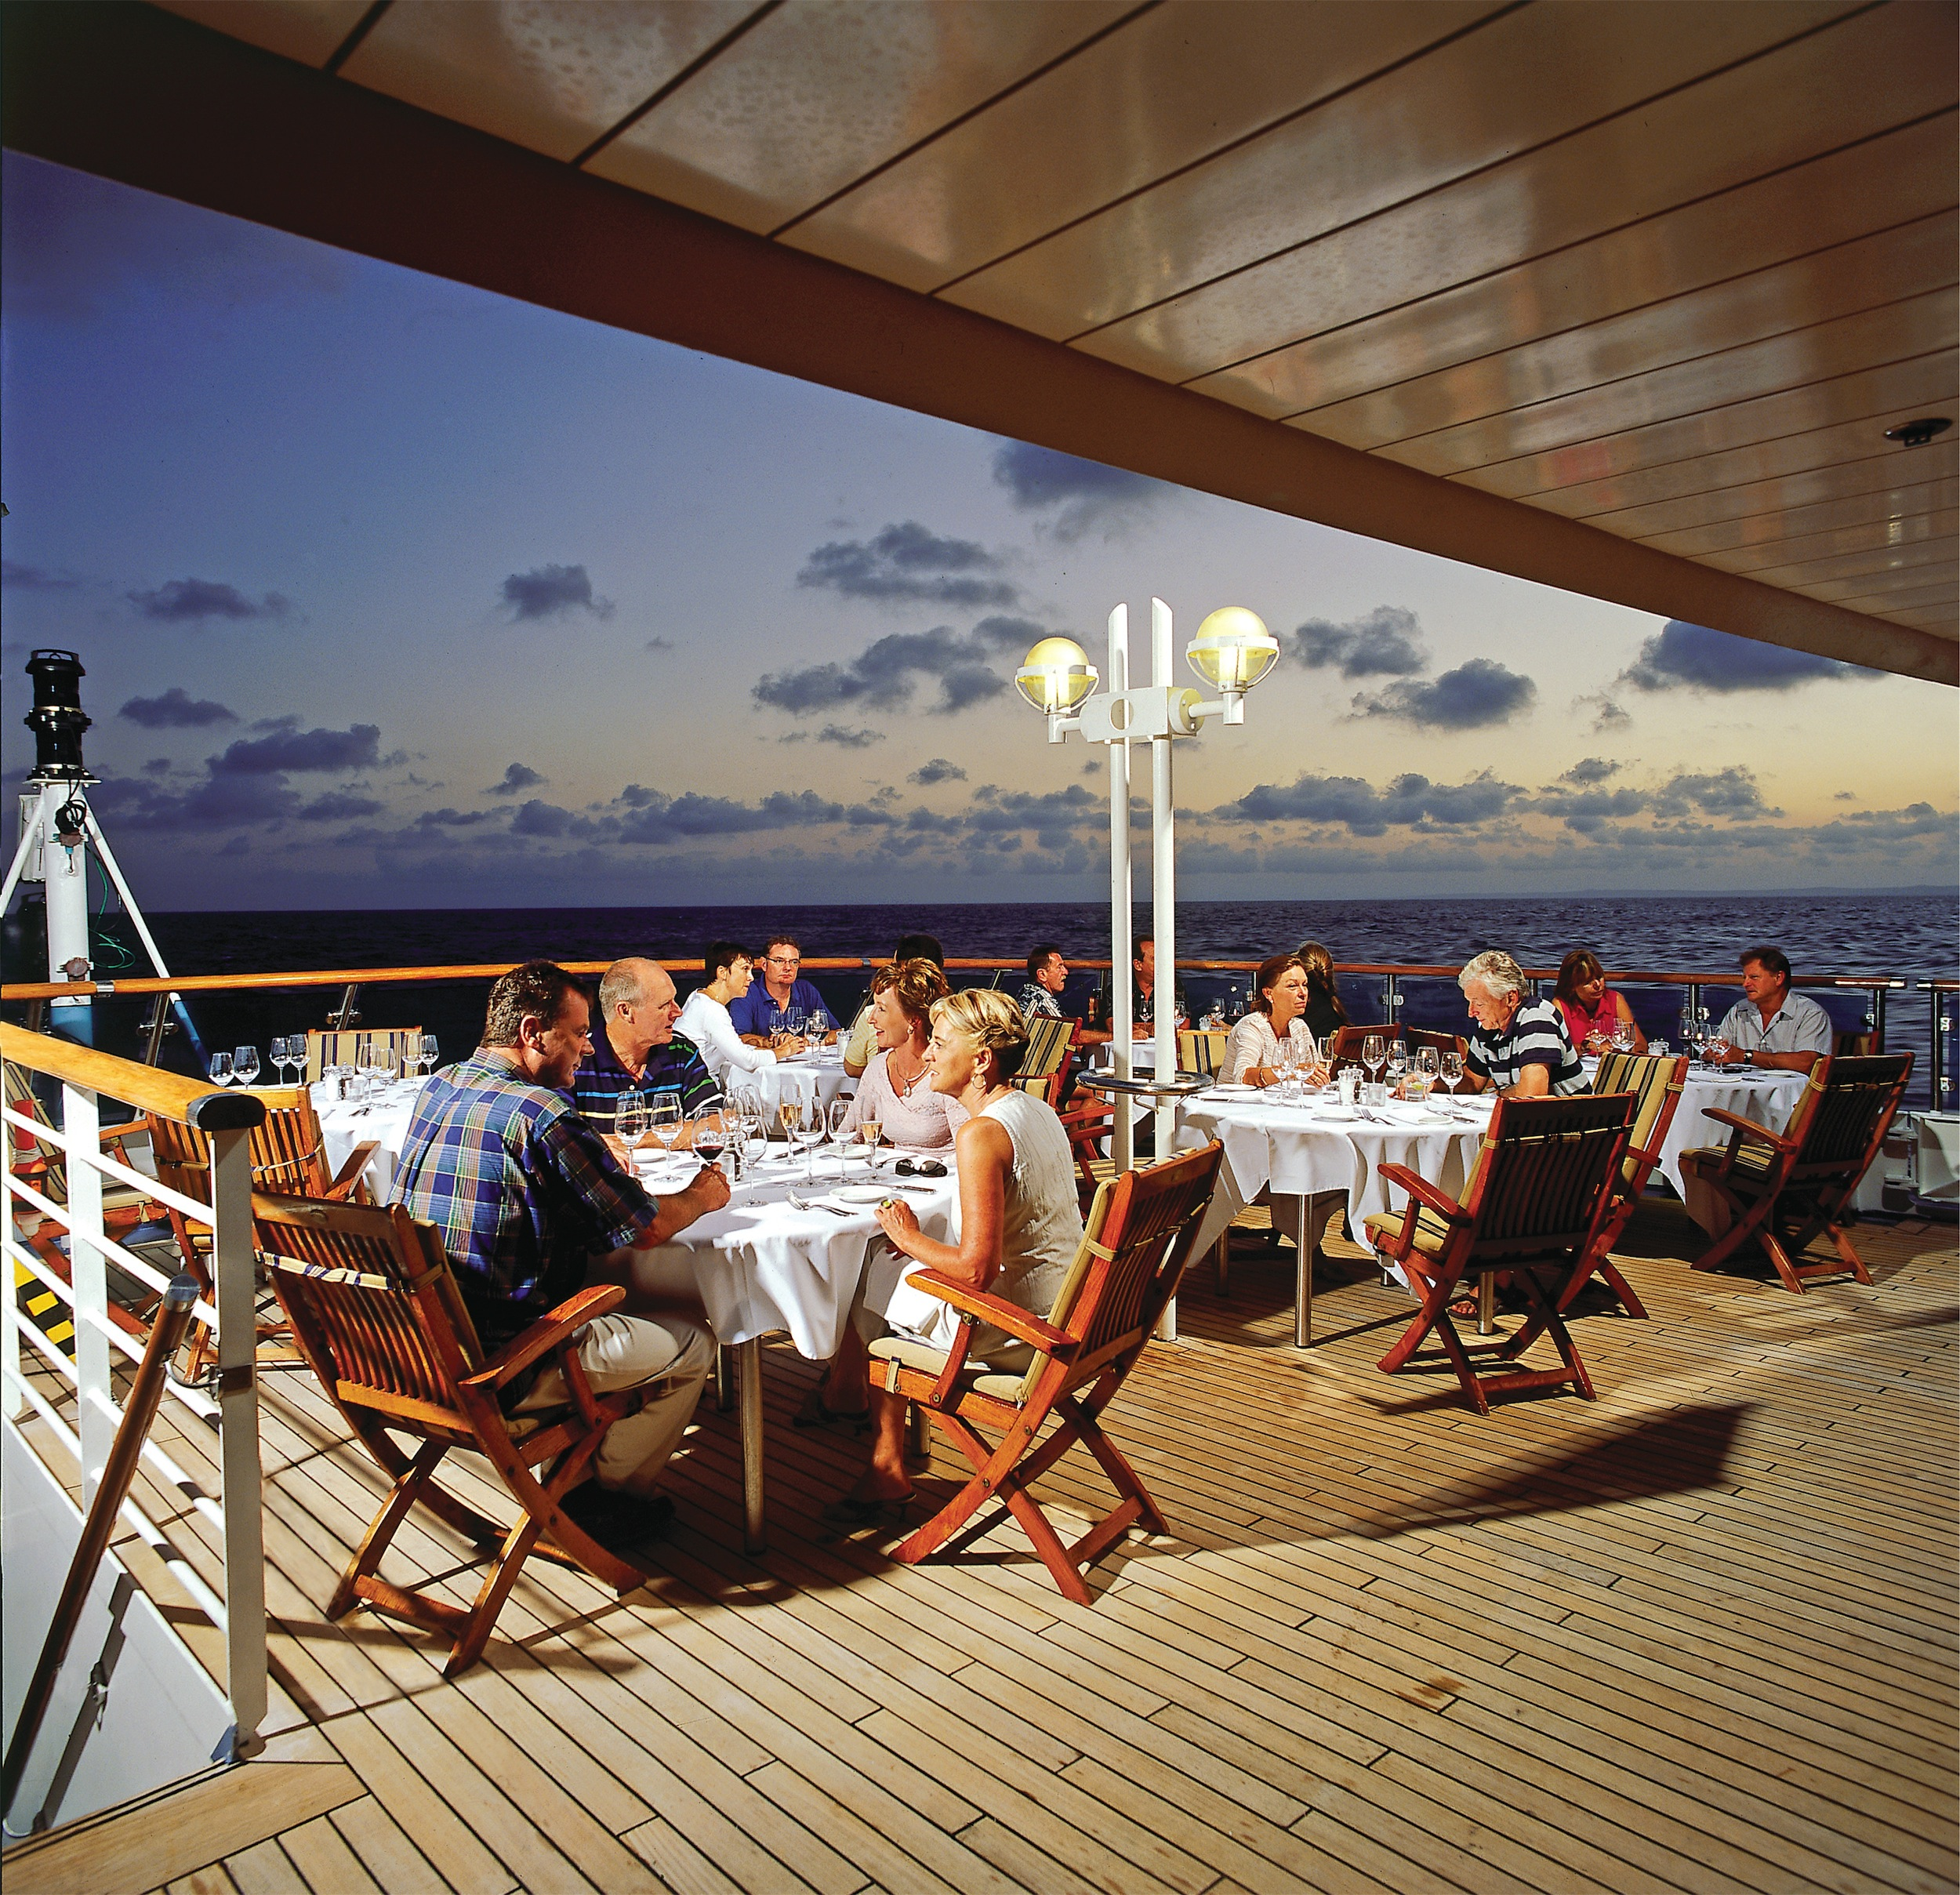 Lindblad Expeditions National Geographic Orion Exterior Dining on Deck 2.jpg